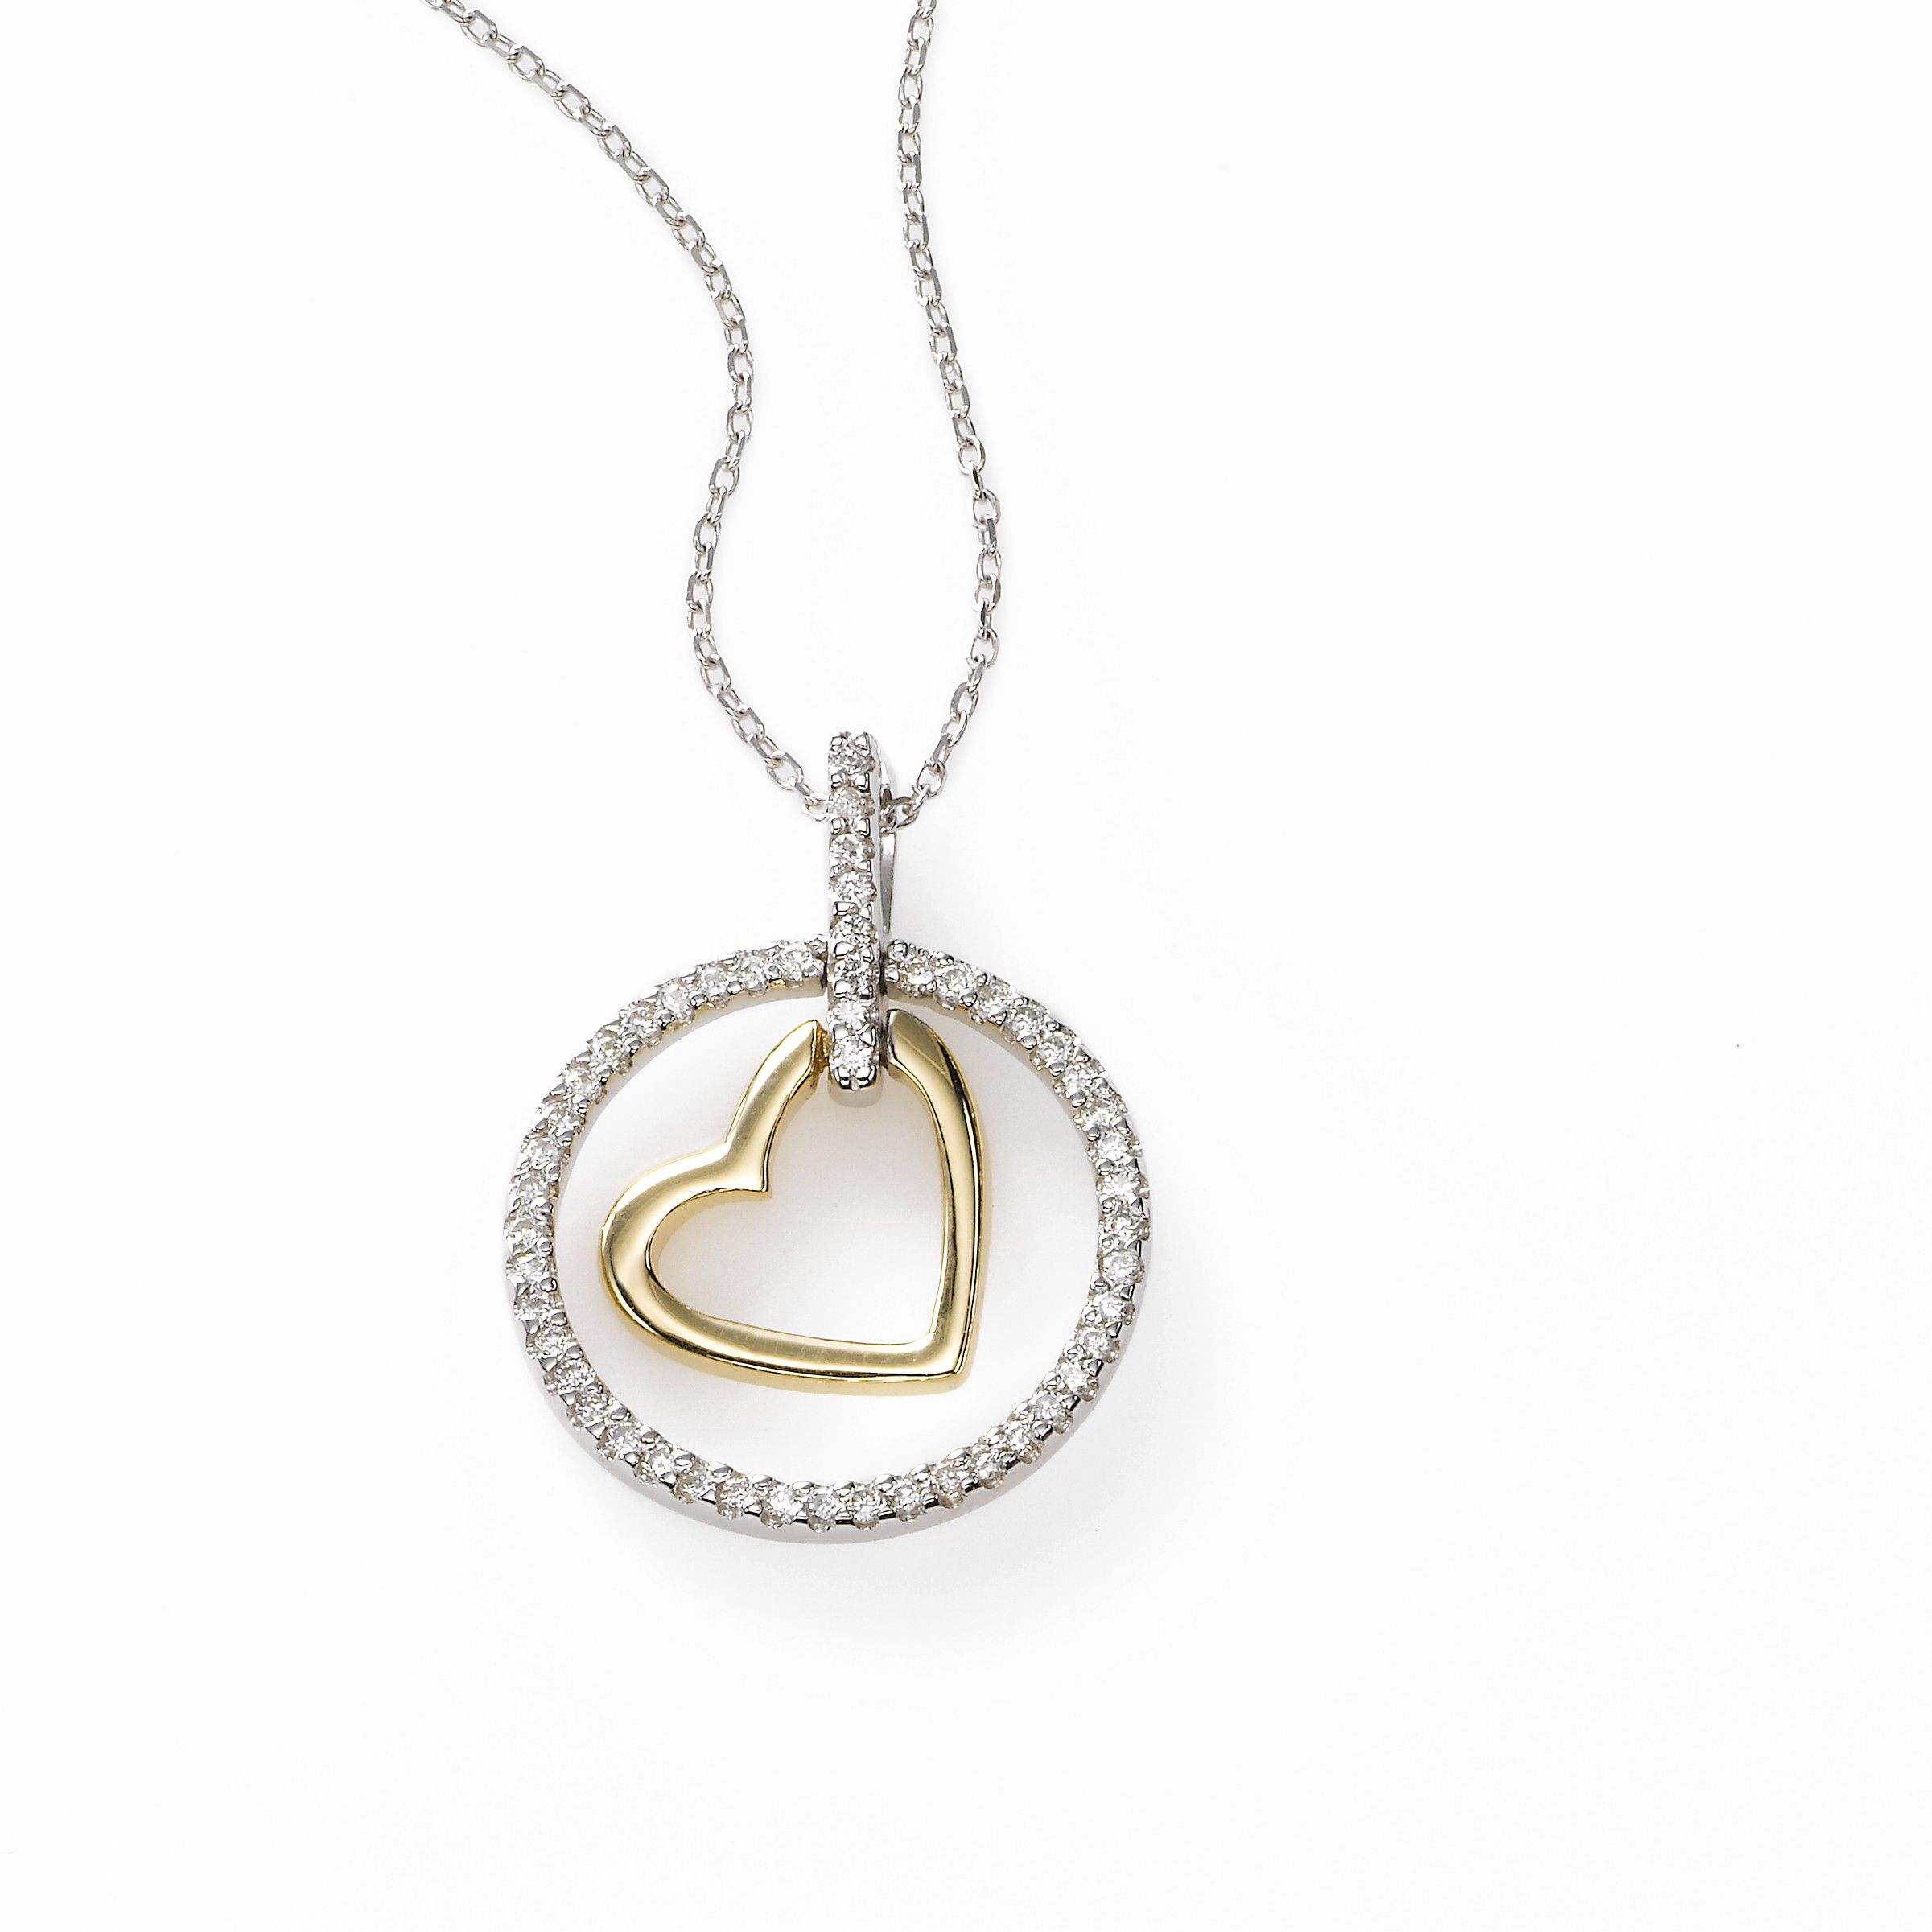 A gleaming circle of diamonds totaling .20 carat surrounds a dangling heart of 14k yellow gold. The dainty pendant is suspended on a bale of diamonds with a delicate 16 inch white gold chain to complete the look. Also available in all white gold.